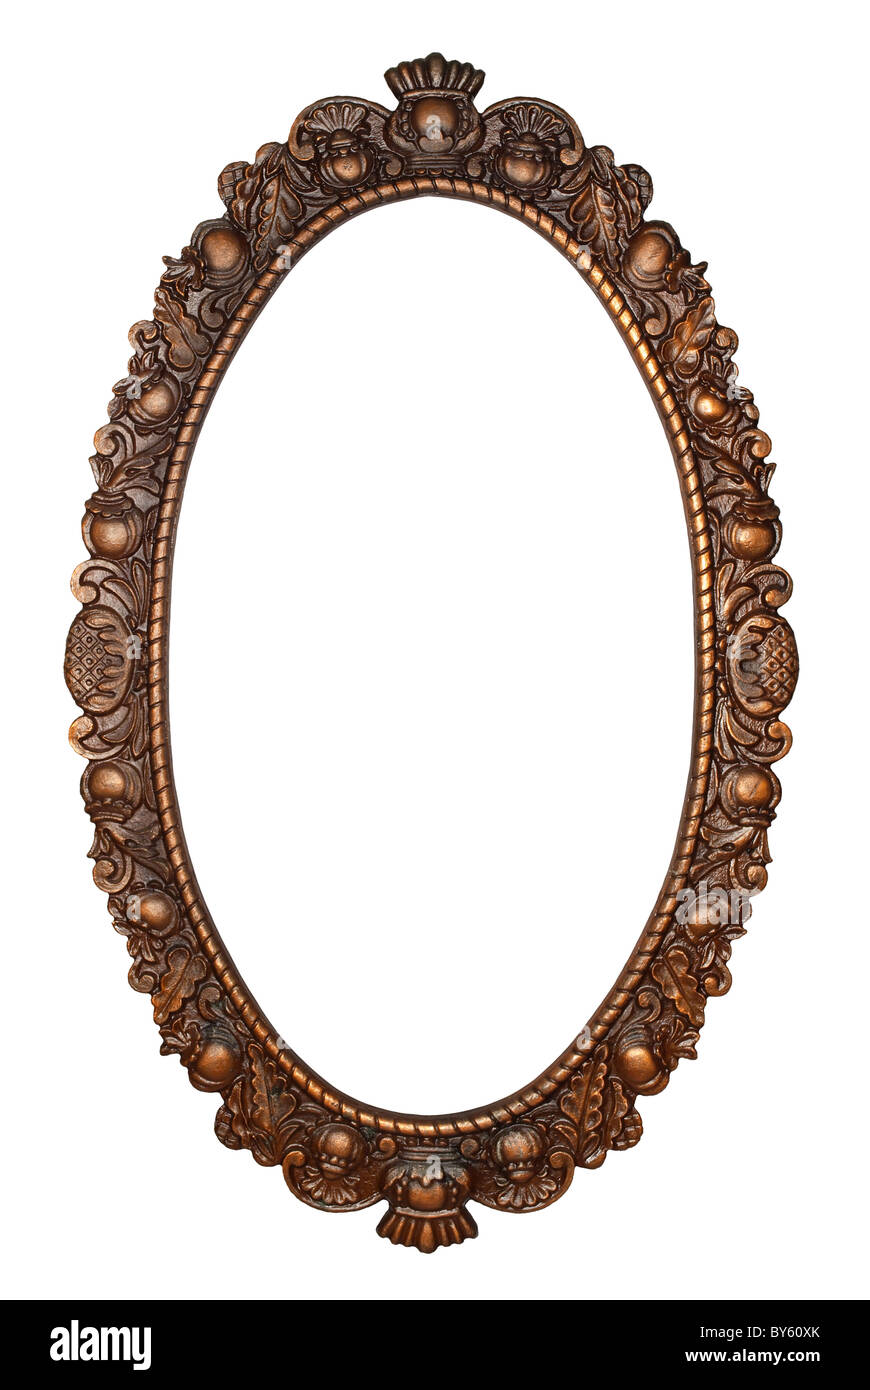 Oval Frame Stock Photos & Oval Frame Stock Images - Alamy